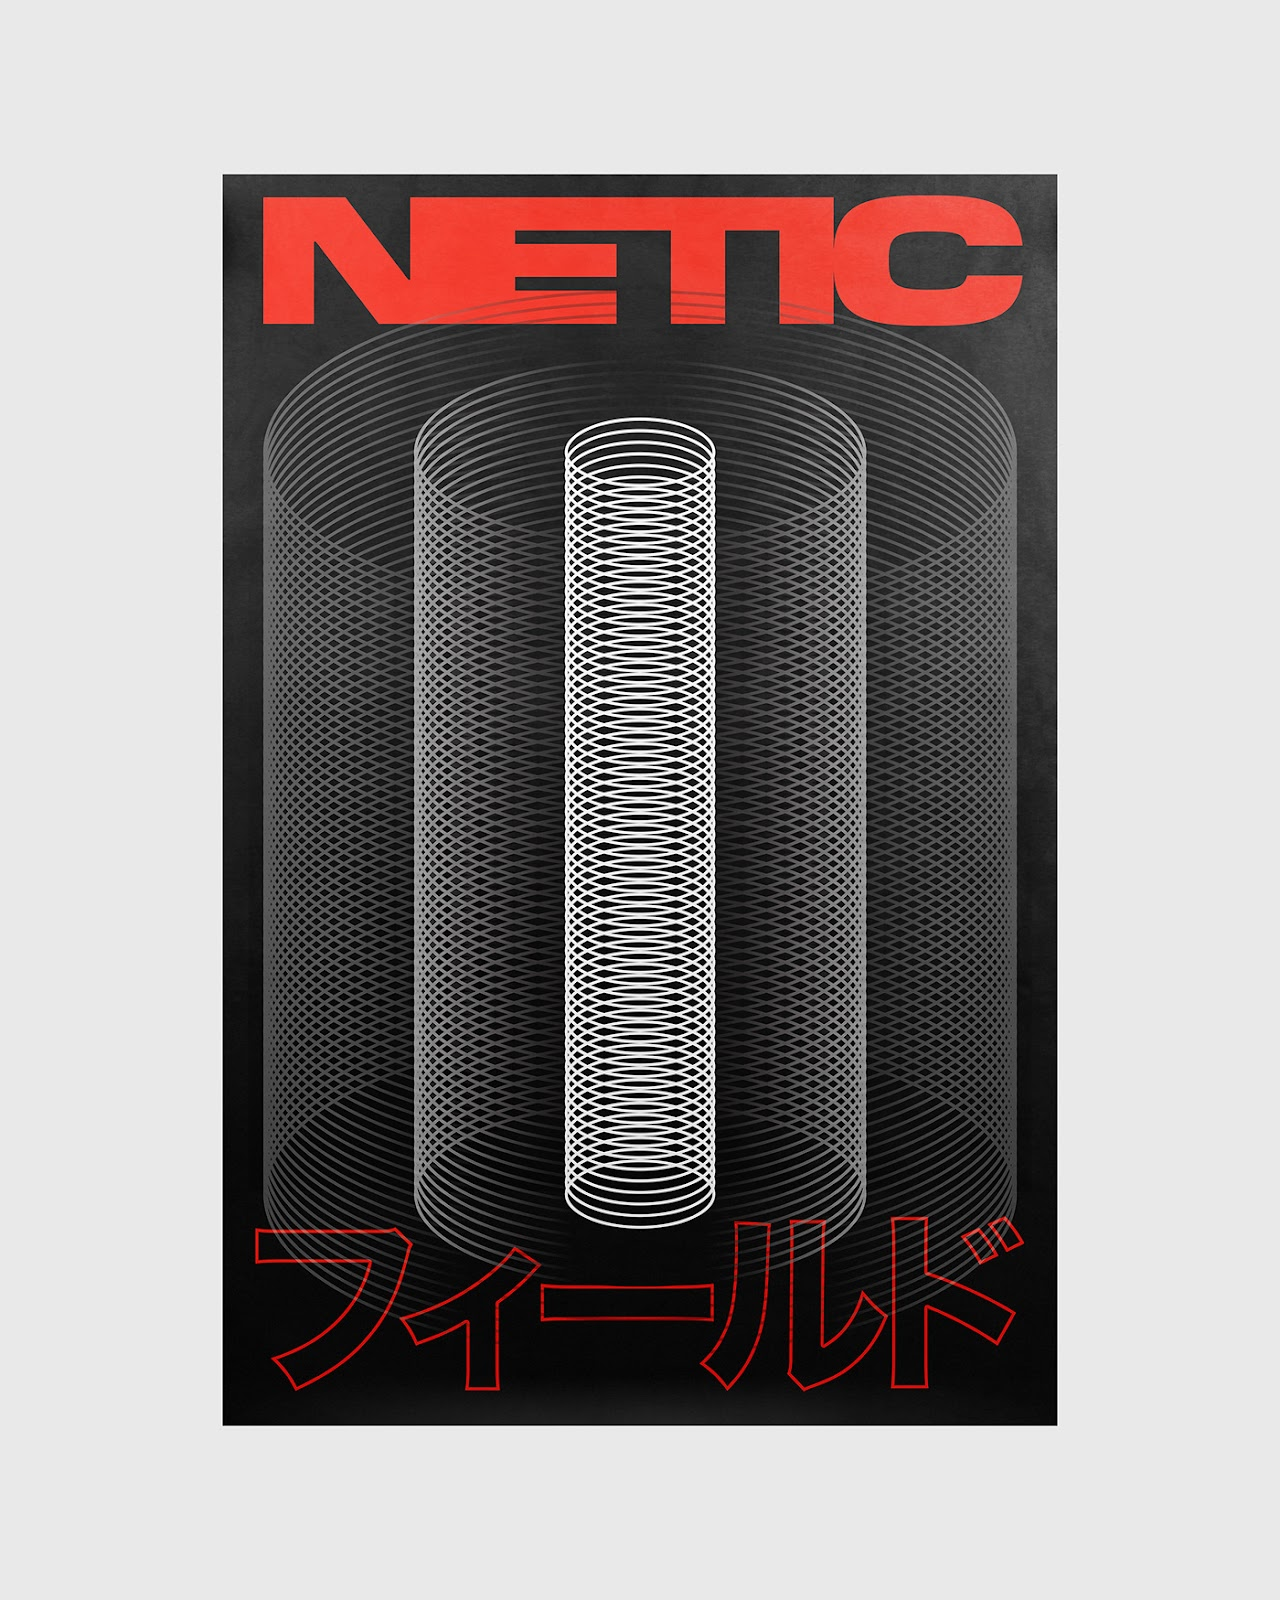 Netic poster by Xtian Miller